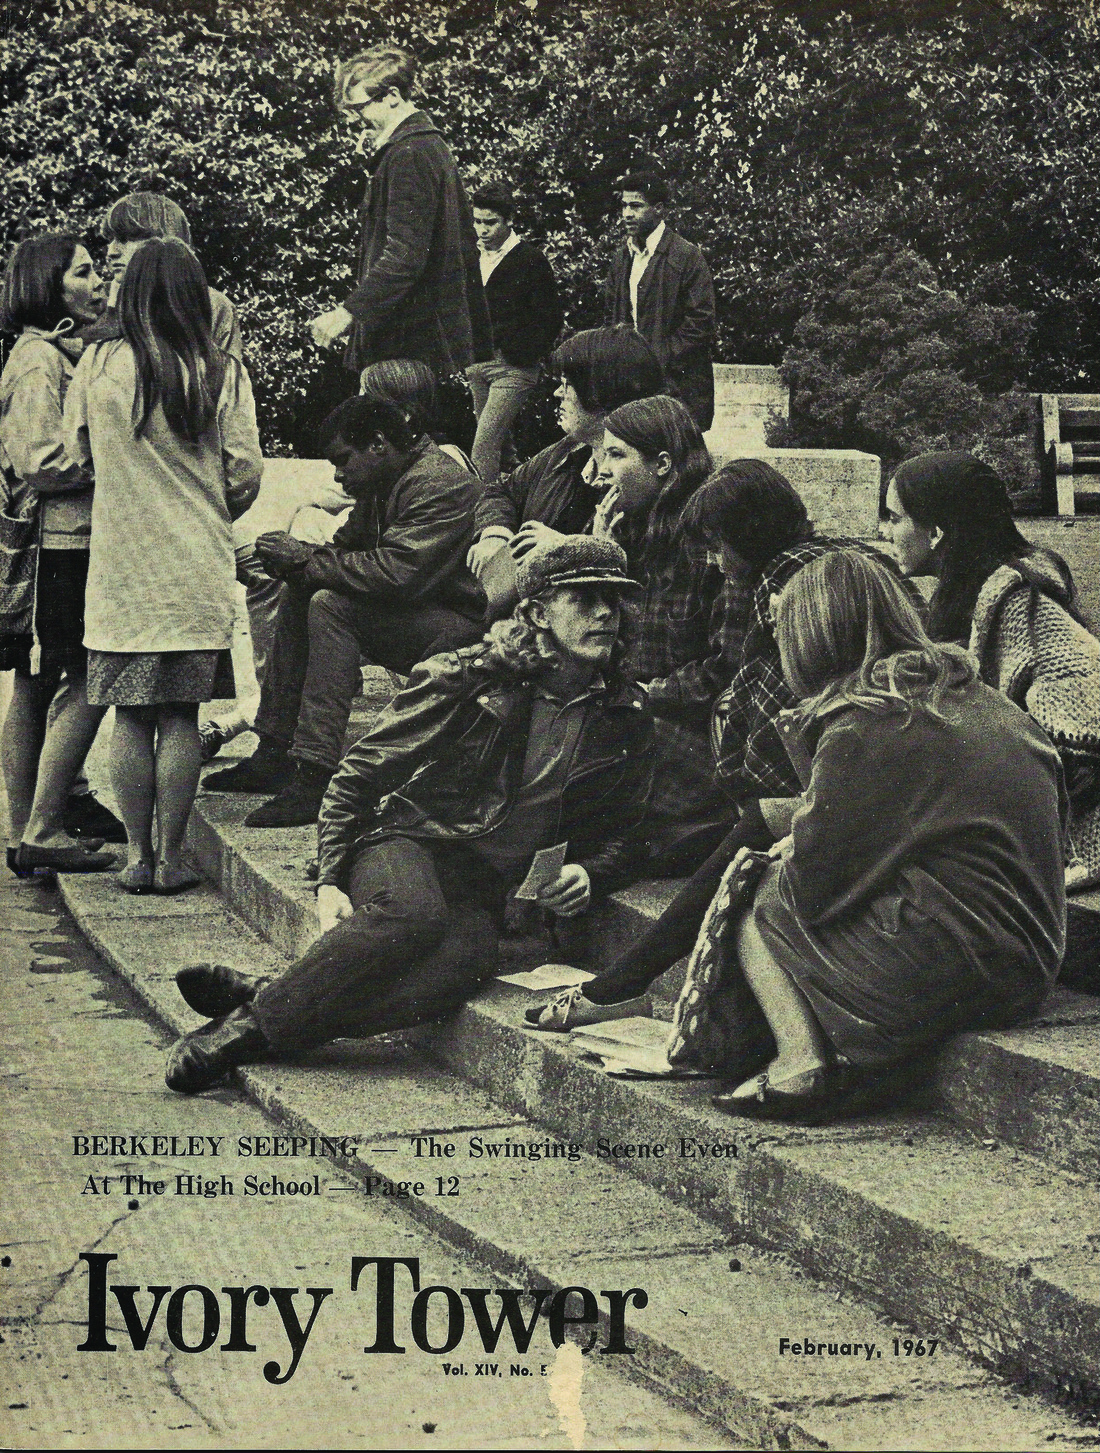 Photo of students sitting on steps circa 1967